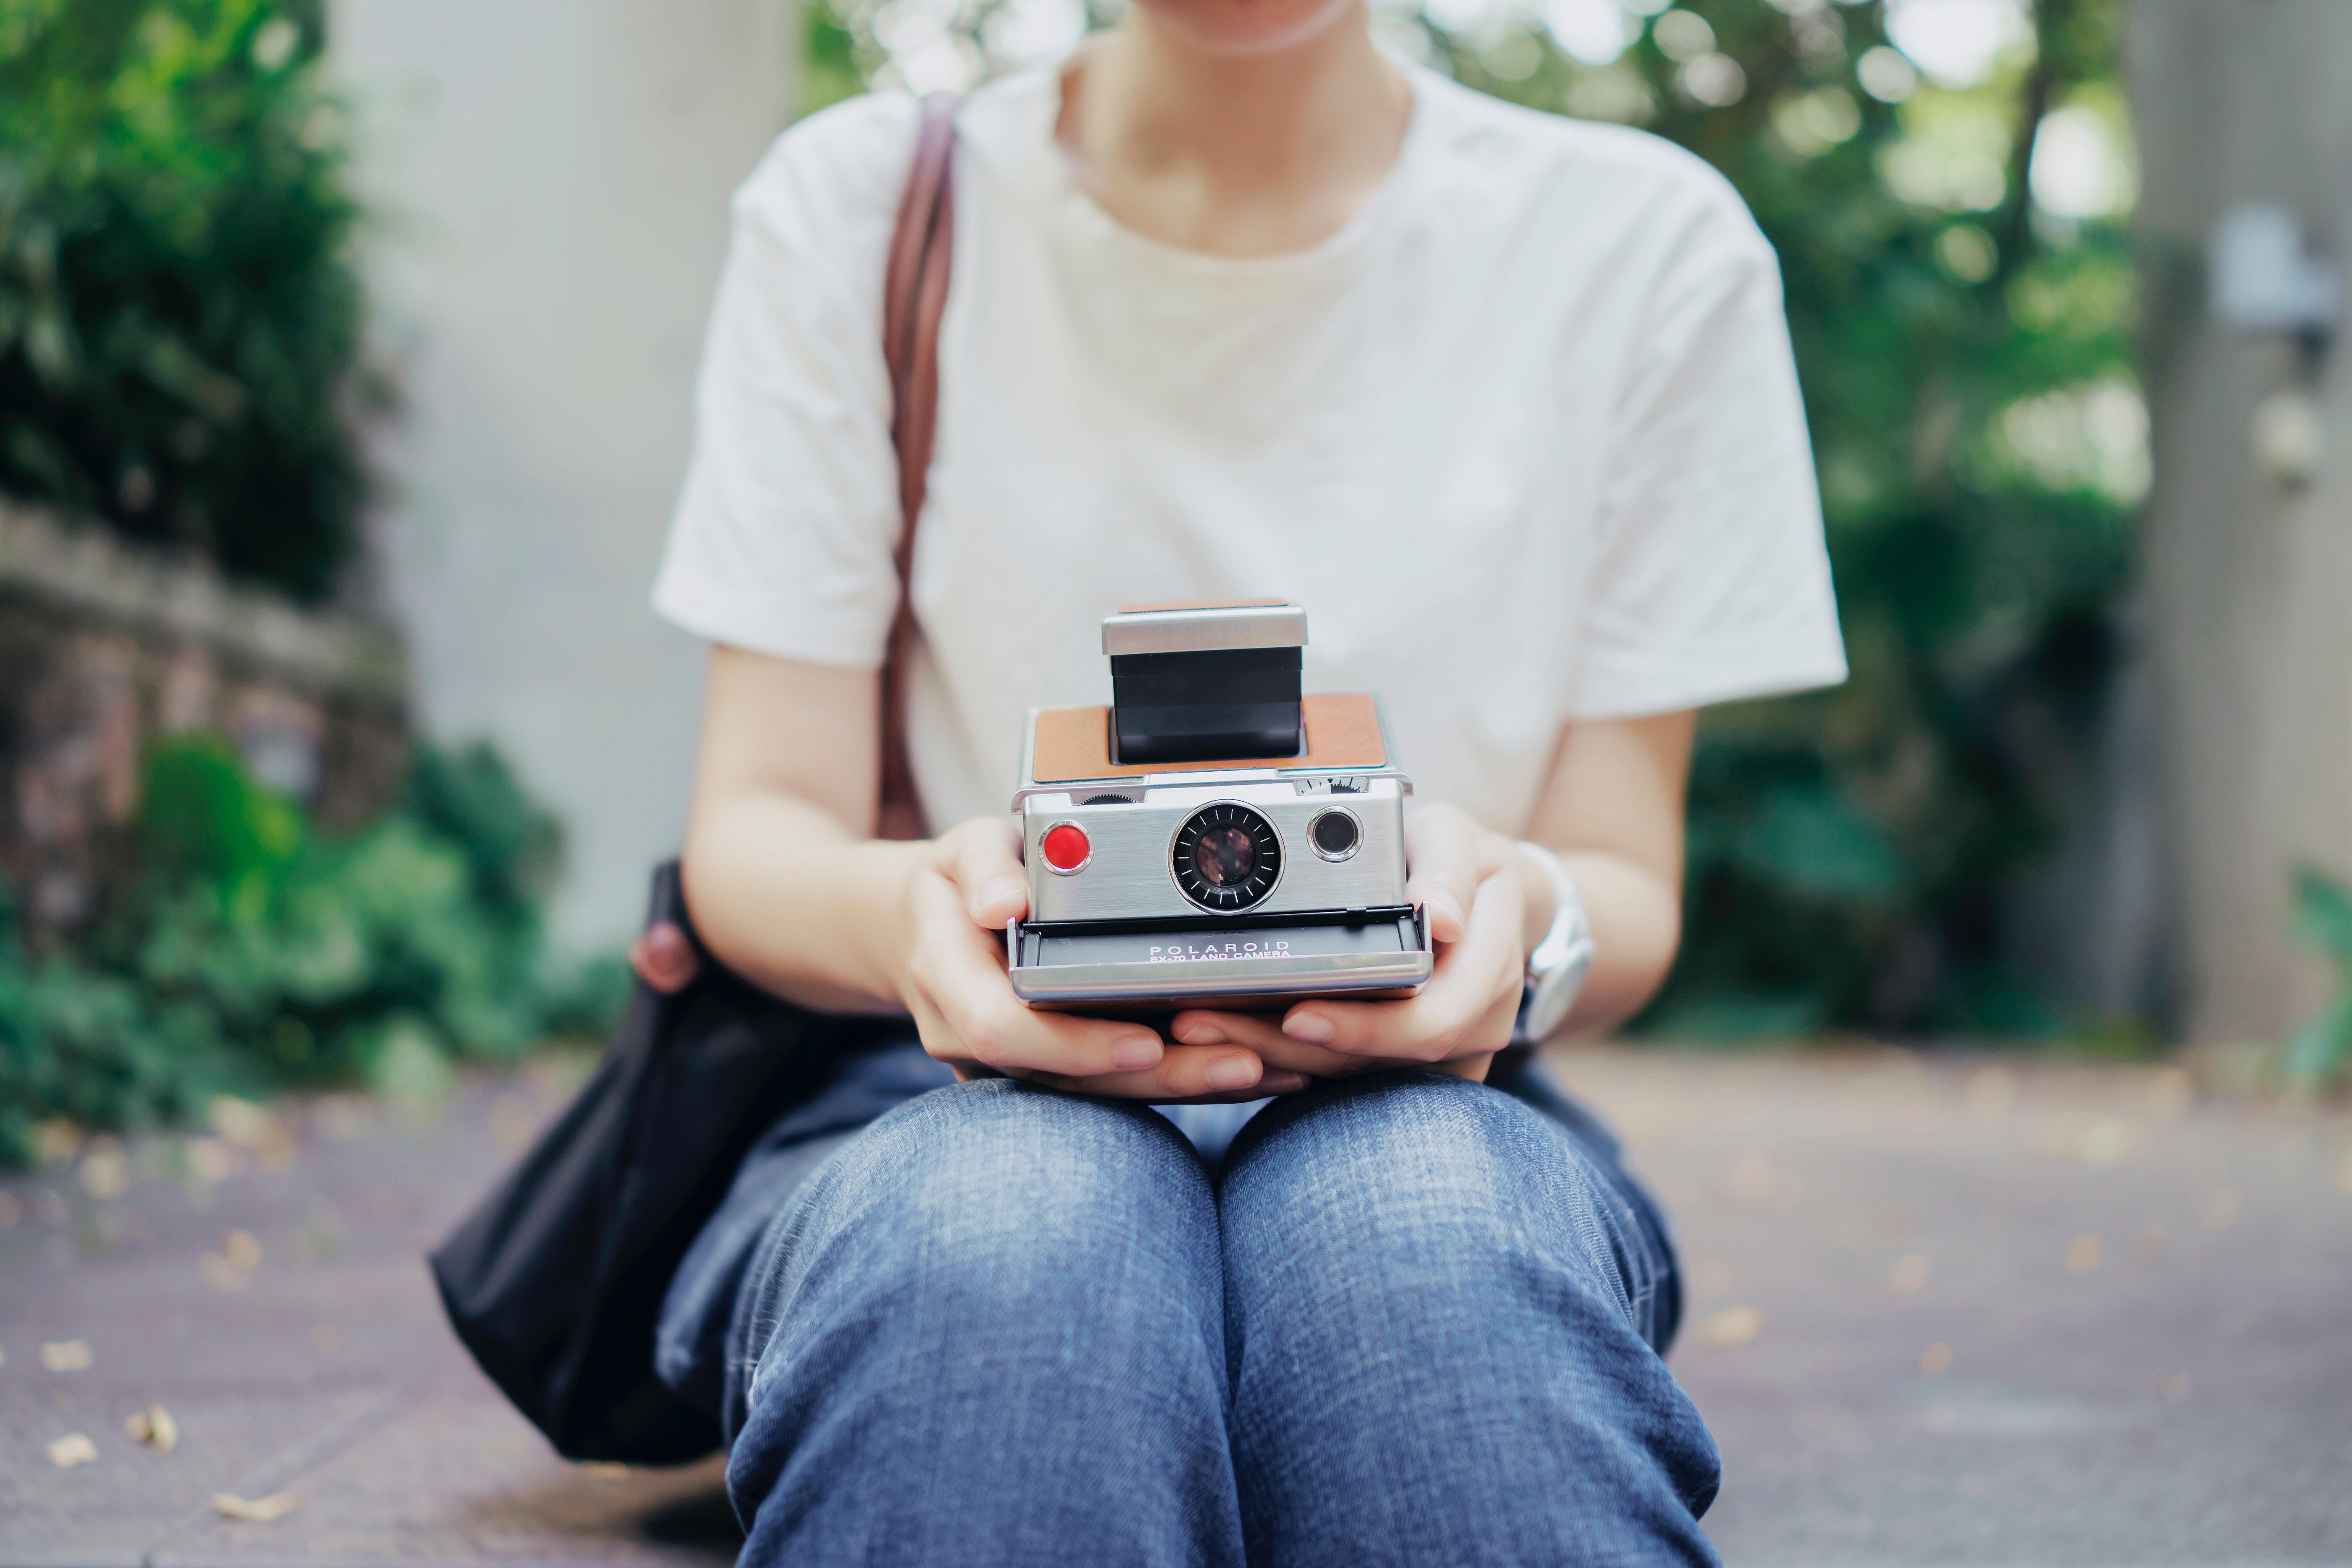 Best Polaroid Camera 2020.5 Of The Best Polaroid Cameras Of All Time Filtergrade